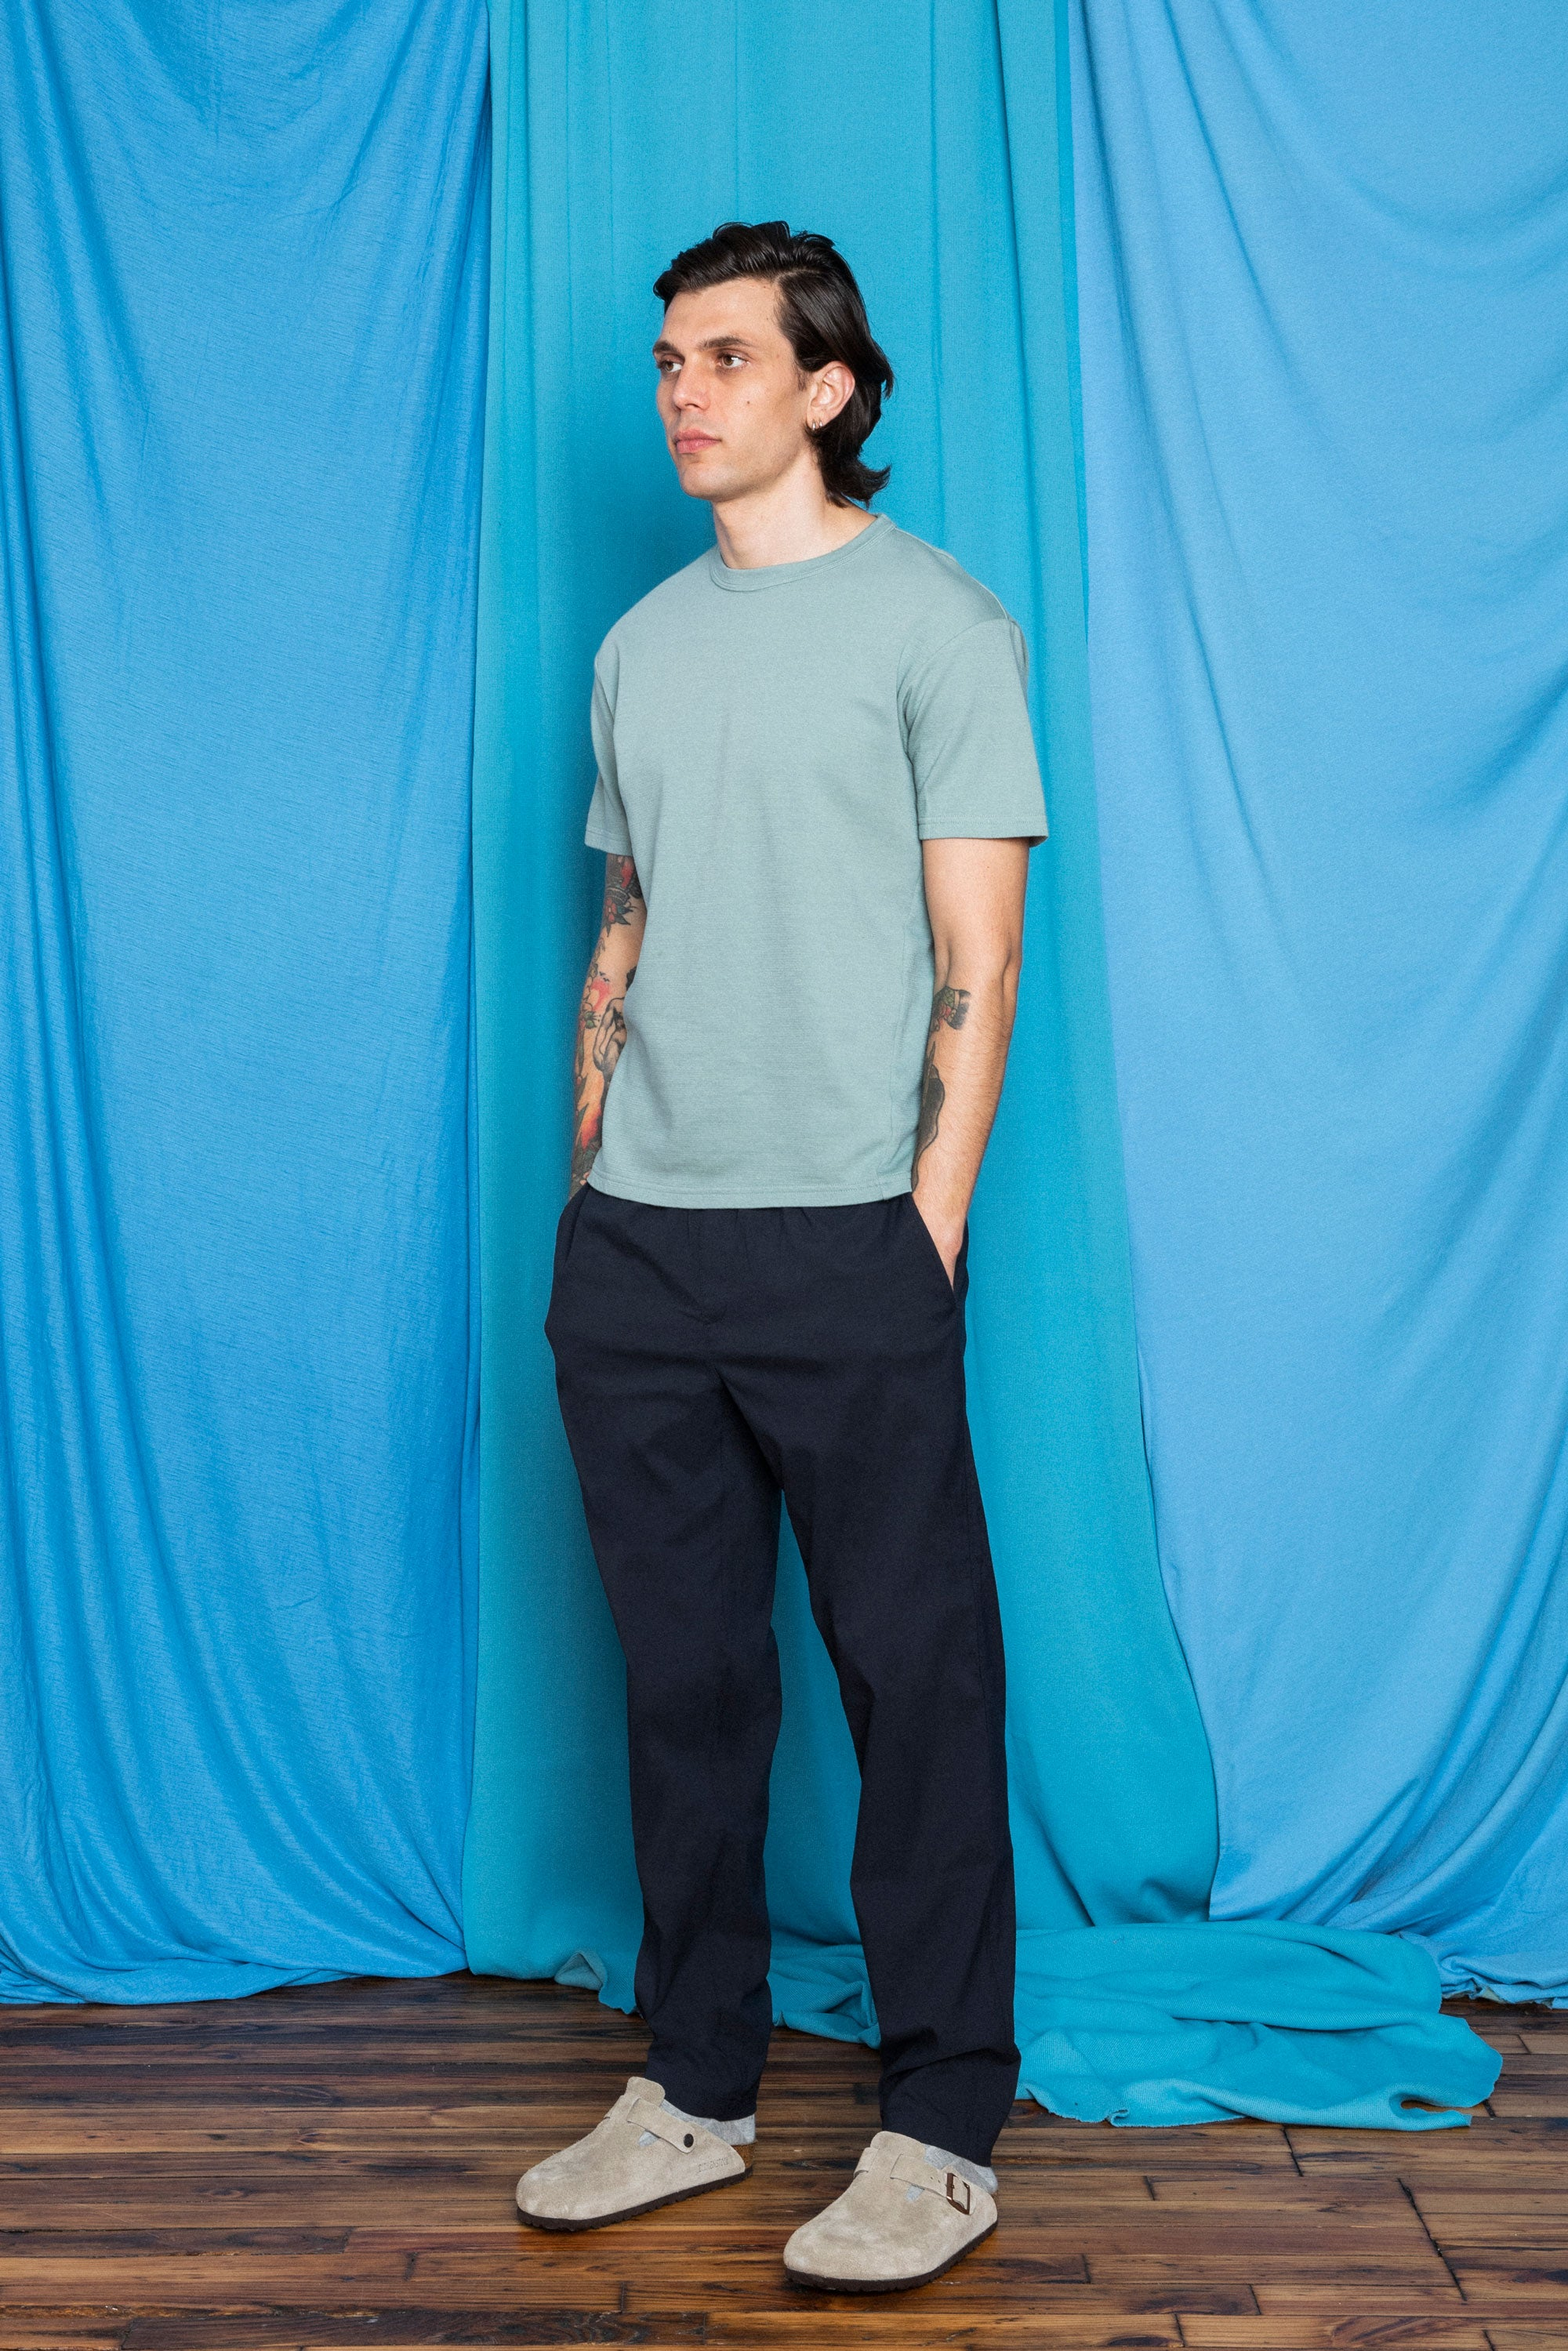 Daniele in the Dark Navy F.Cloth Yes Pants and Sage Cottonweight Cut Two T-Shirt, 3/4 view